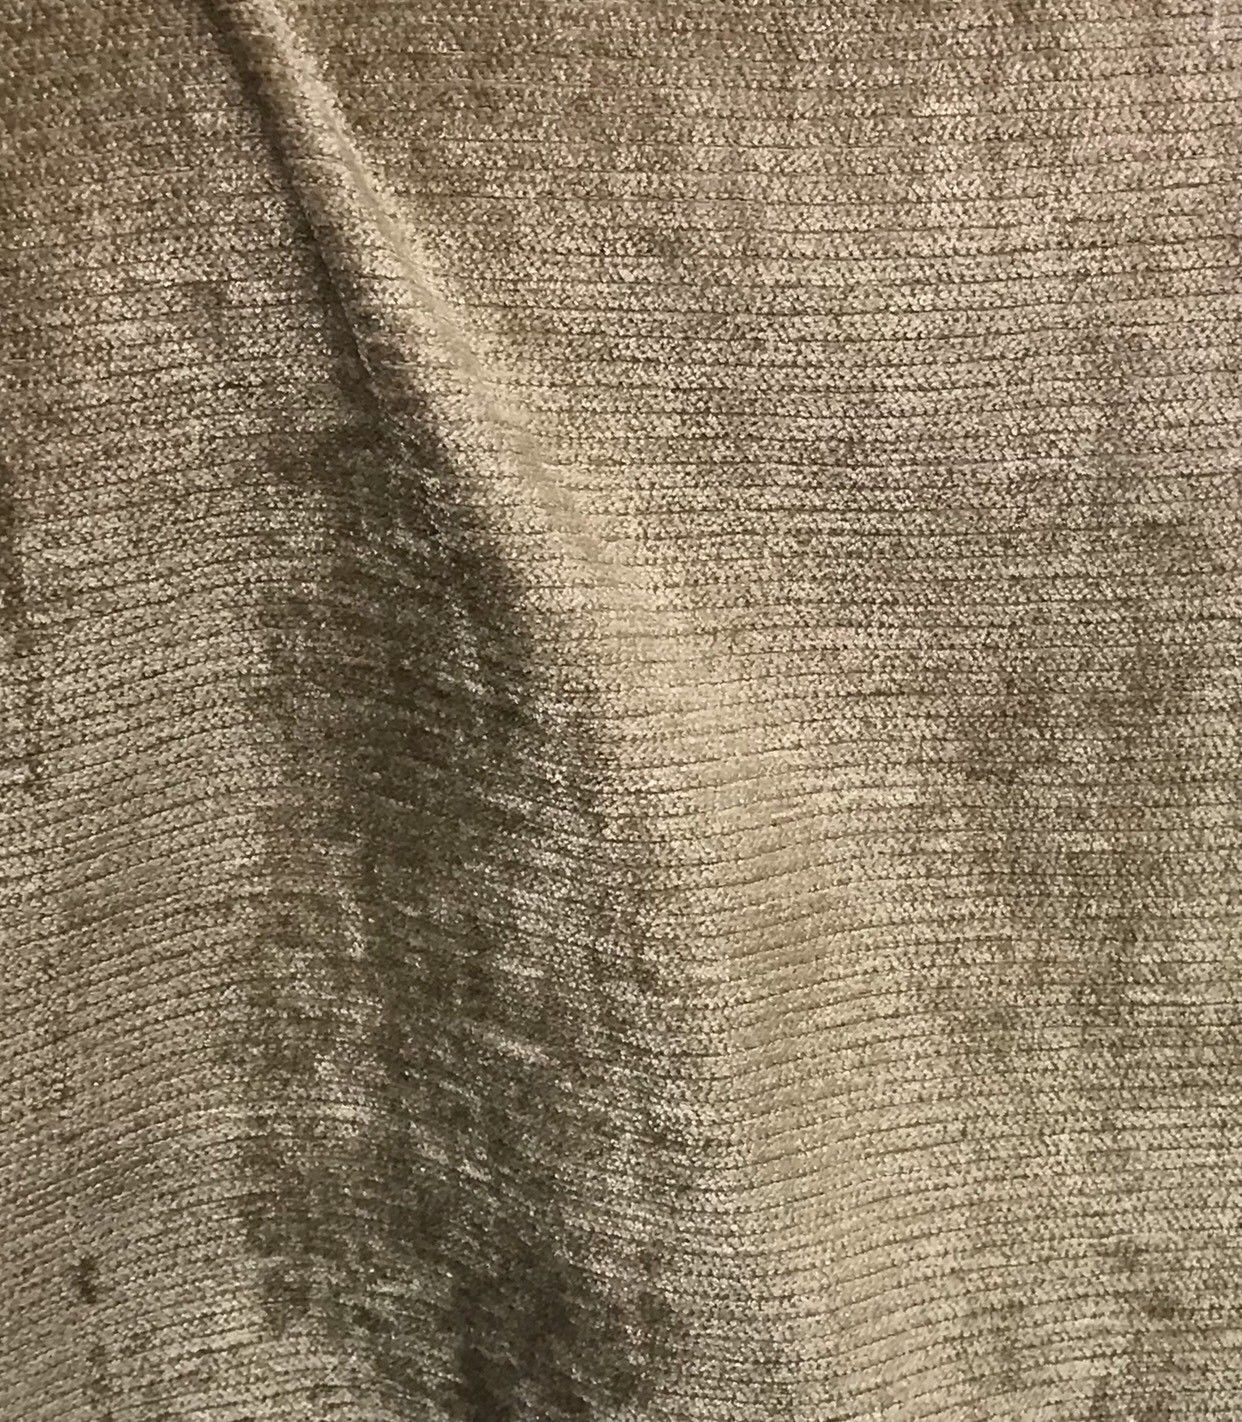 SALE! Designer Velvet Chenille Fabric - Olive Taupe - Upholstery - Fancy Styles Fabric Boutique